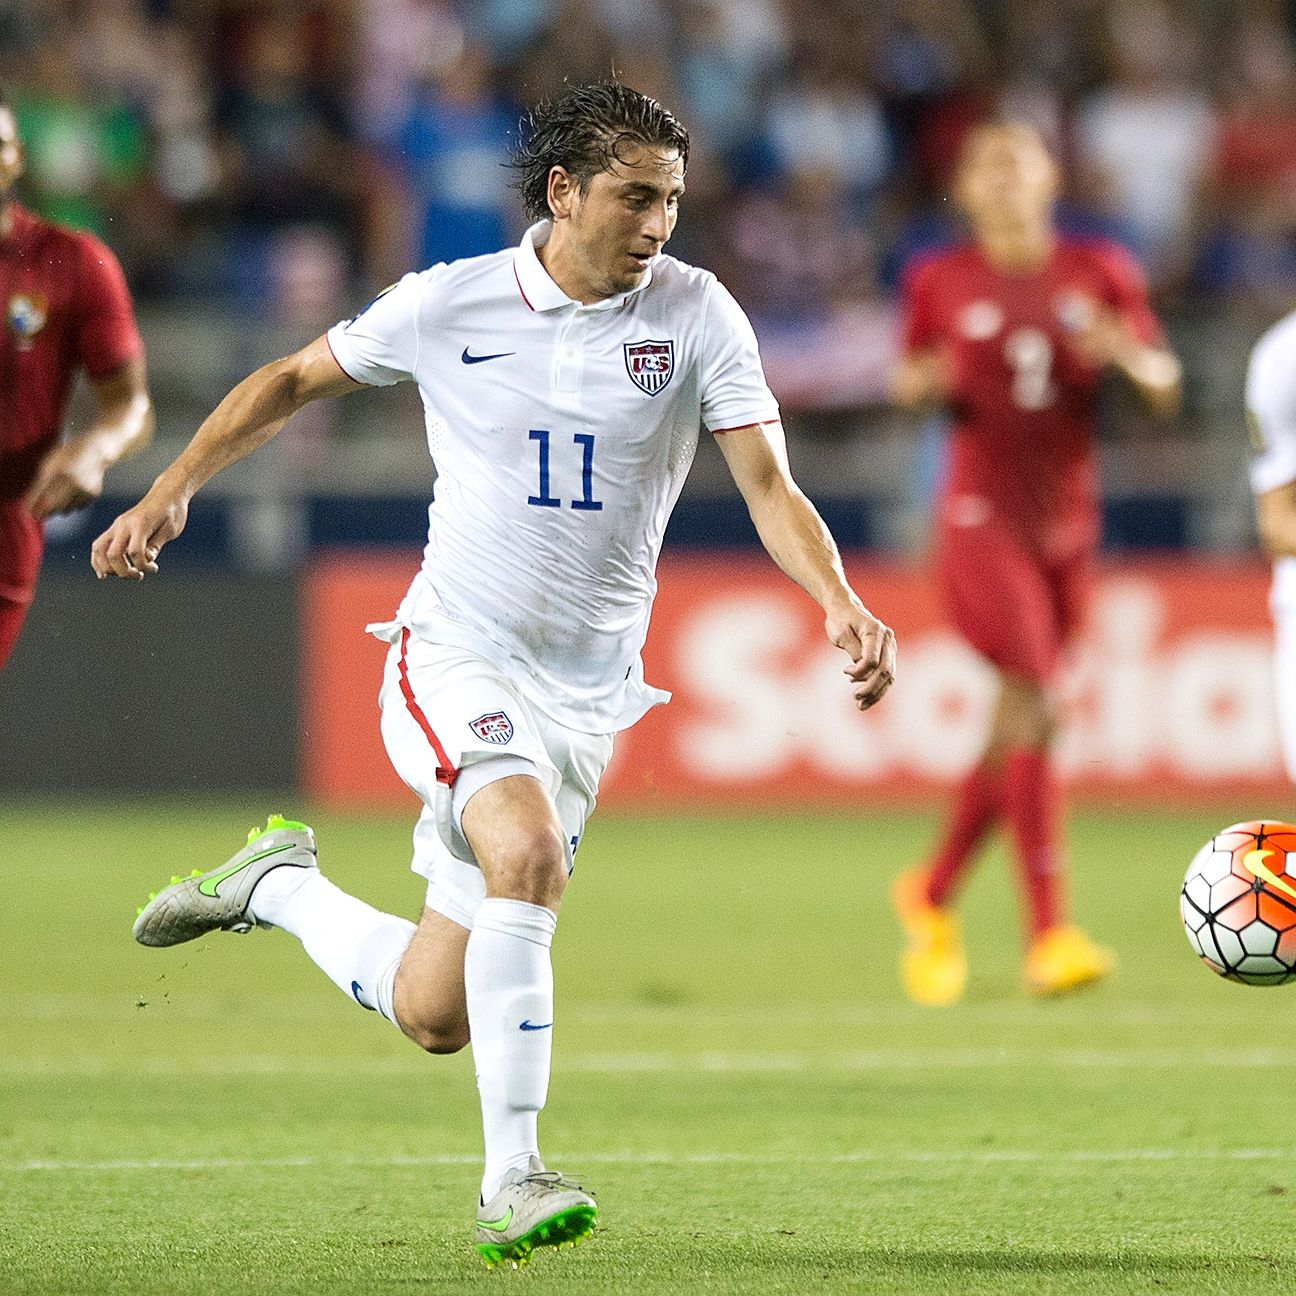 Despite playing a holding midfield role against Brazil, Alejandro Bedoya remains the likely No. 1 right midfield option.